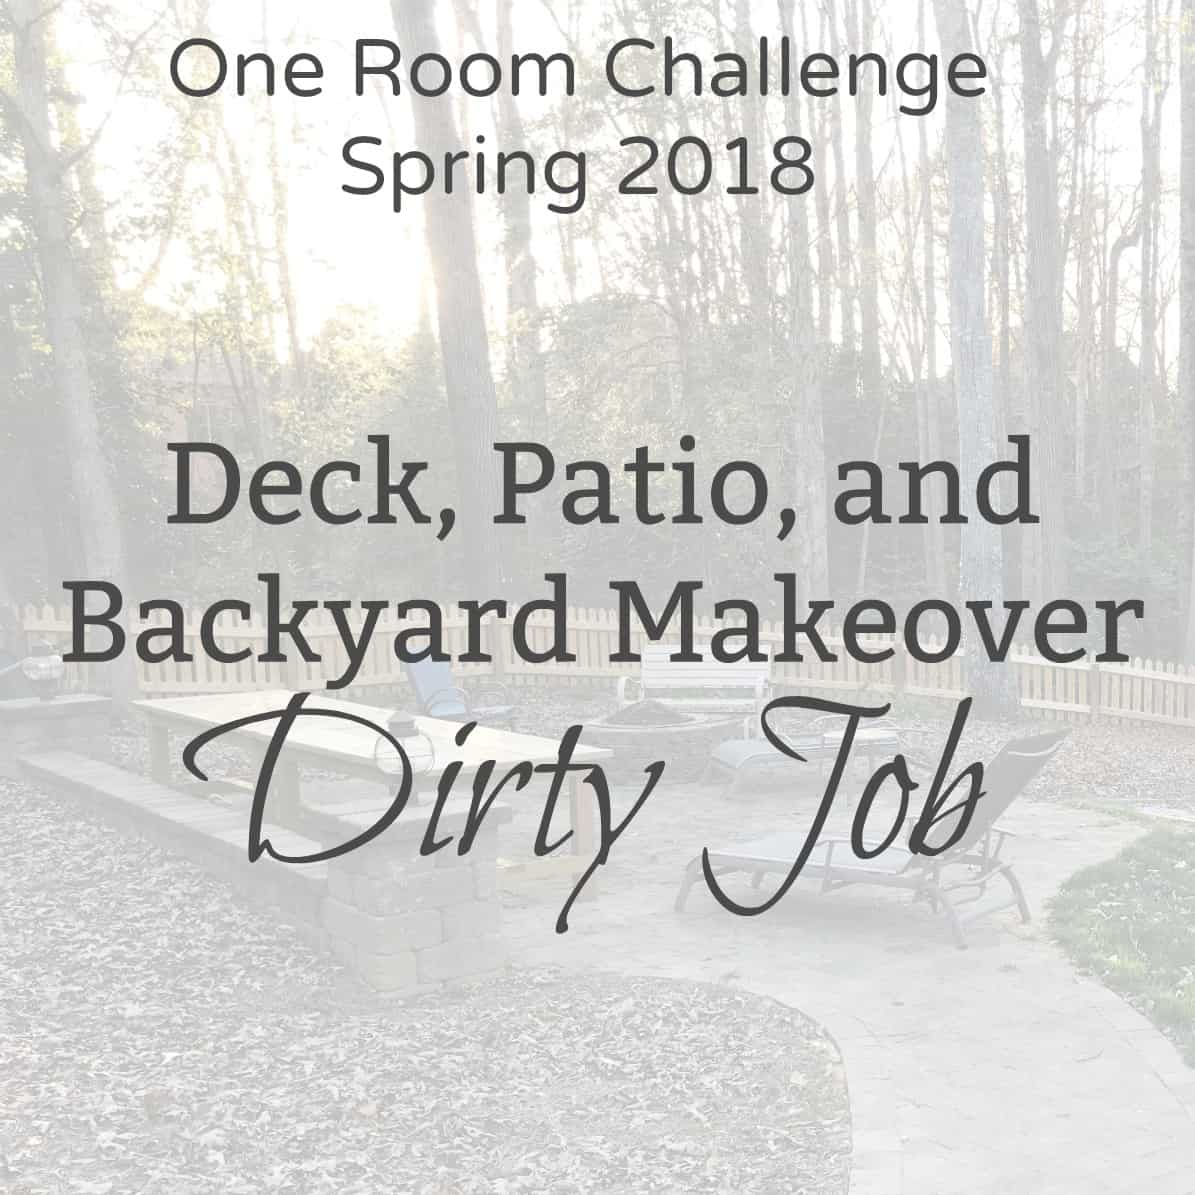 One Room Challenge Spring 2018 Week 3